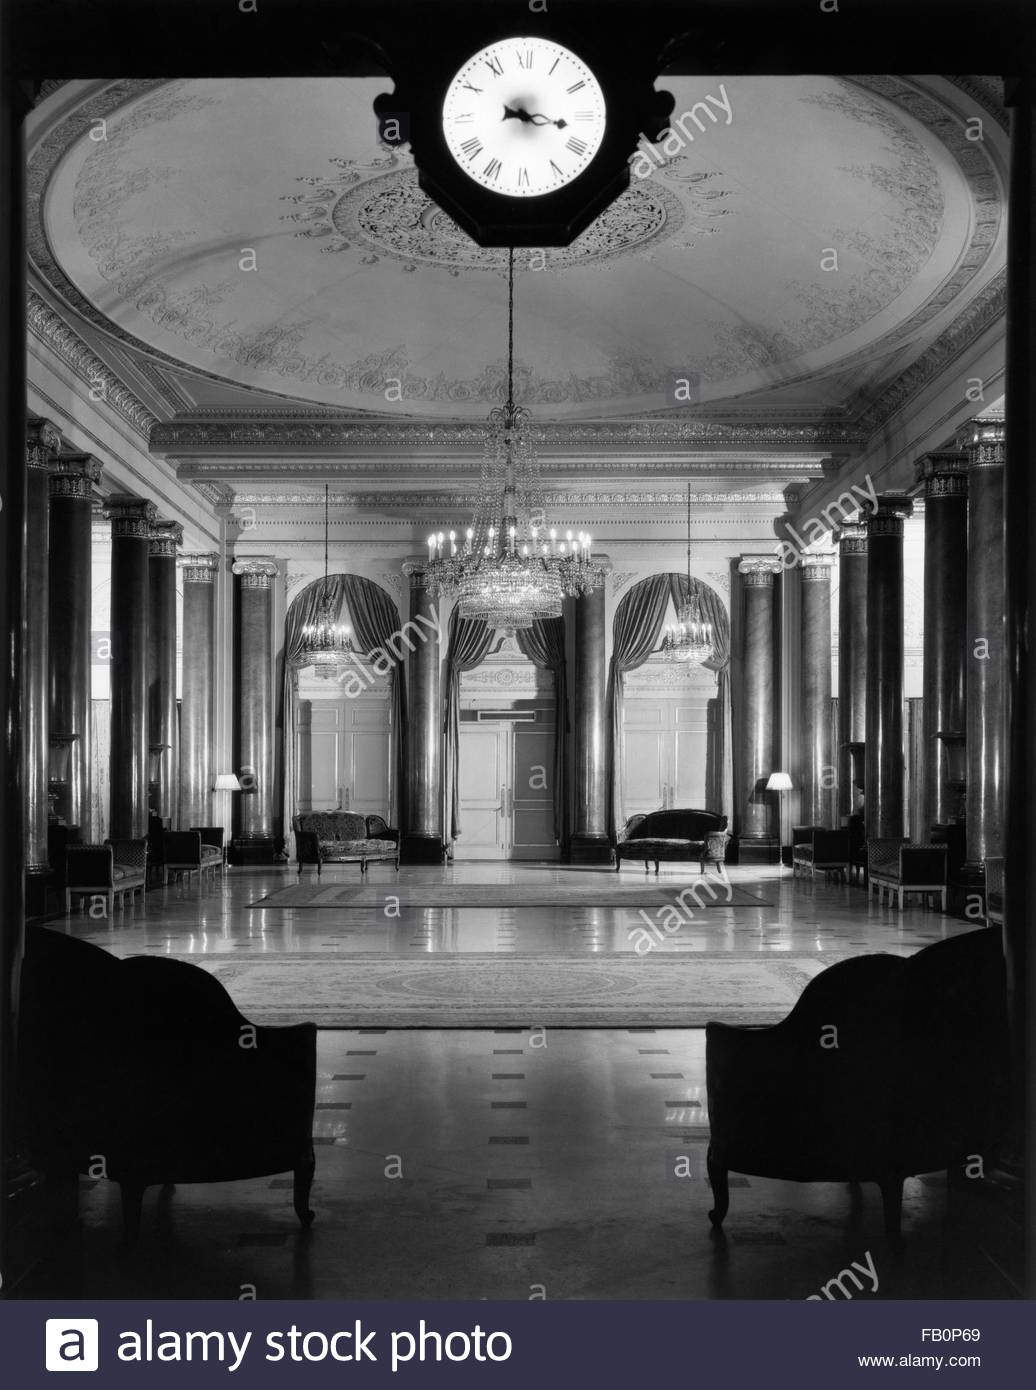 Beverly Theater and other Chicago views, 1935 Aug. 15. Interior, Palmer House fourth floor lobby - Stock Image